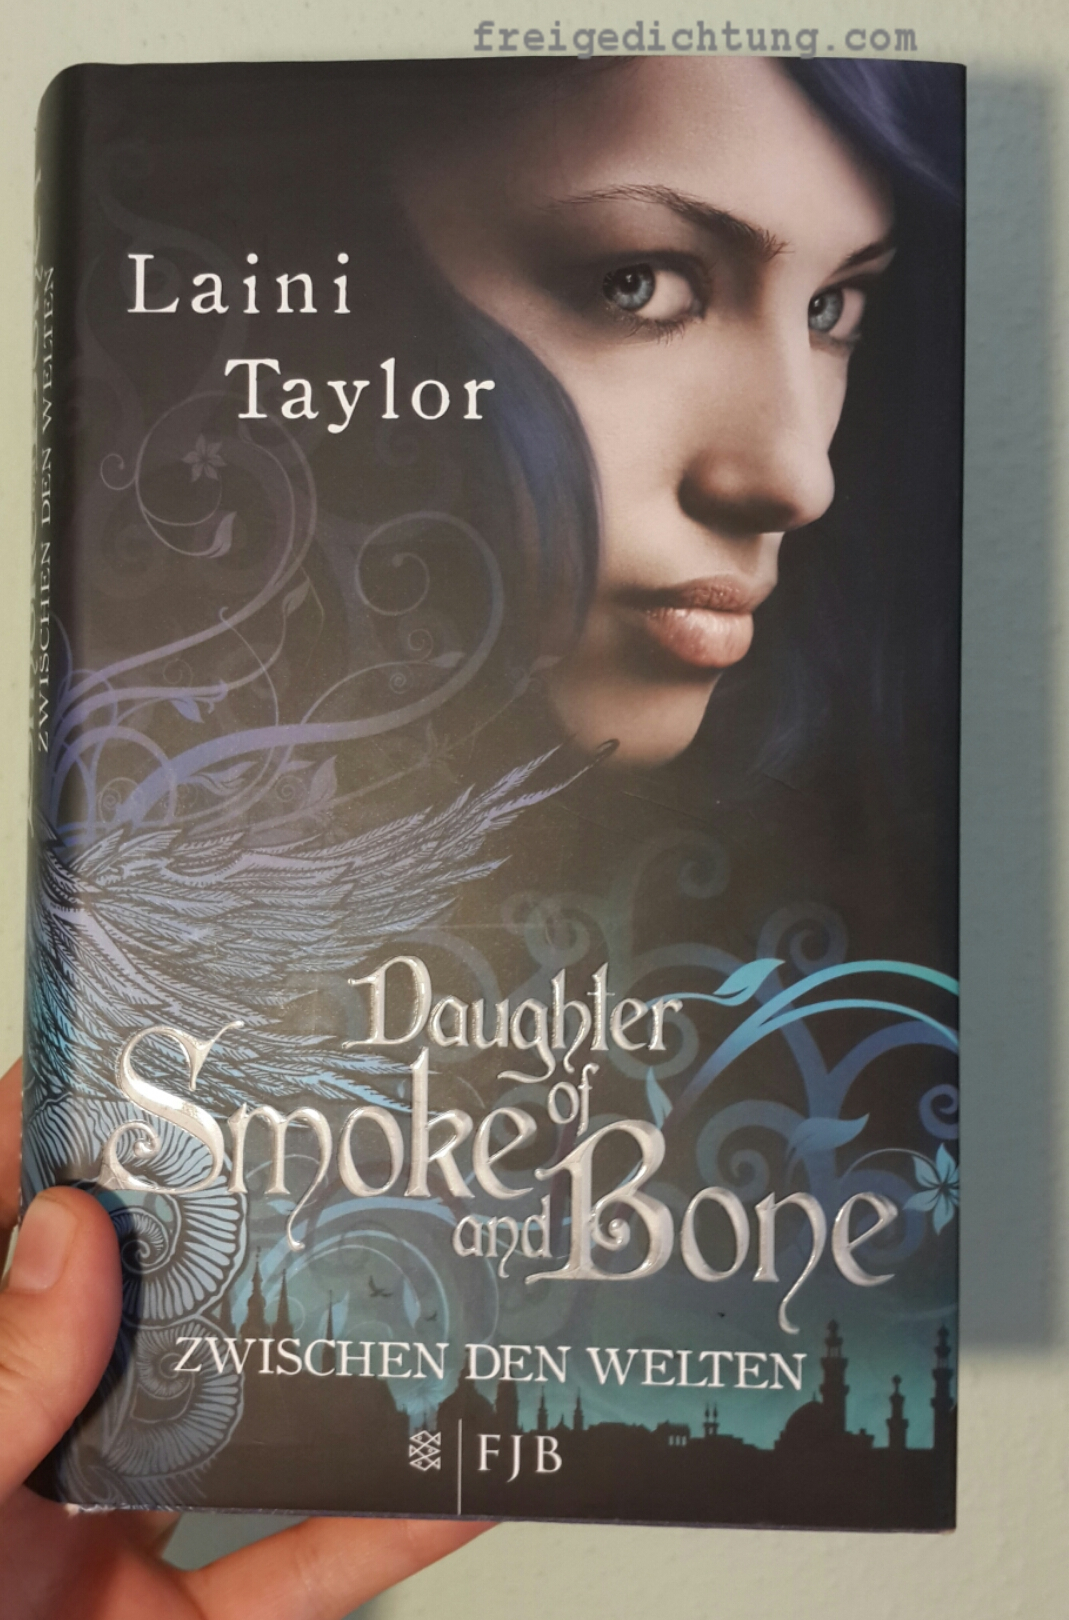 38-daughter-of-smoke-and-bones